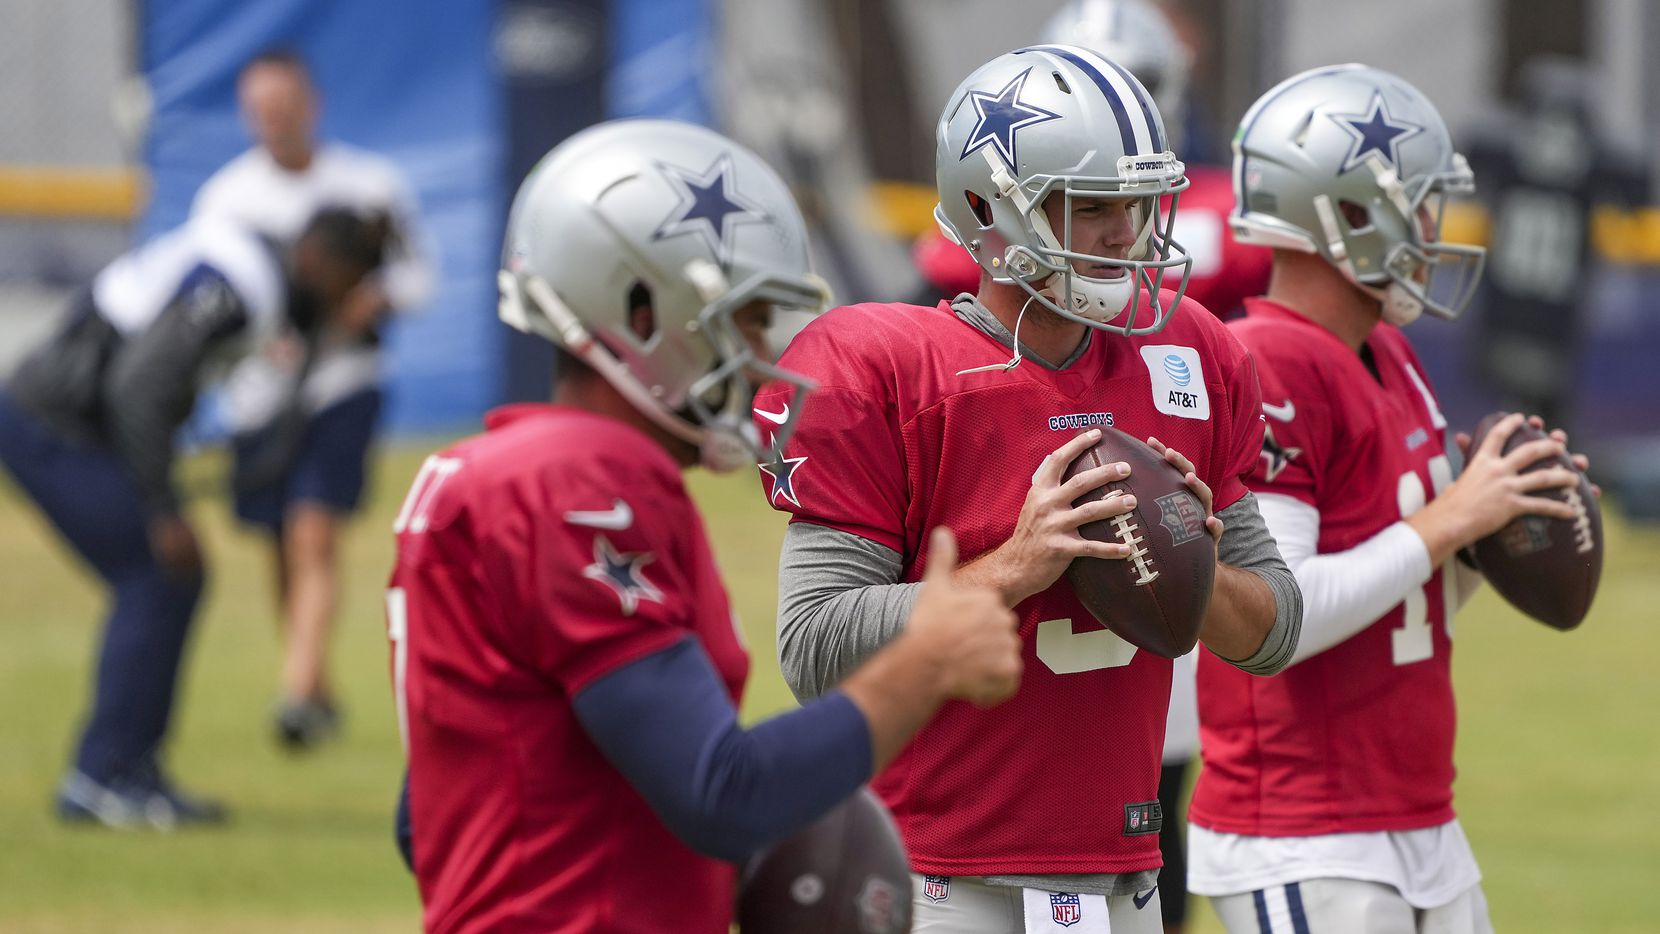 Dallas Cowboys quarterback Garrett Gilbert (3) runs a drill with Ben DiNucci (7) and Cooper Rush (10) during a practice at training camp on Wednesday, Aug. 11, 2021, in Oxnard, Calif.